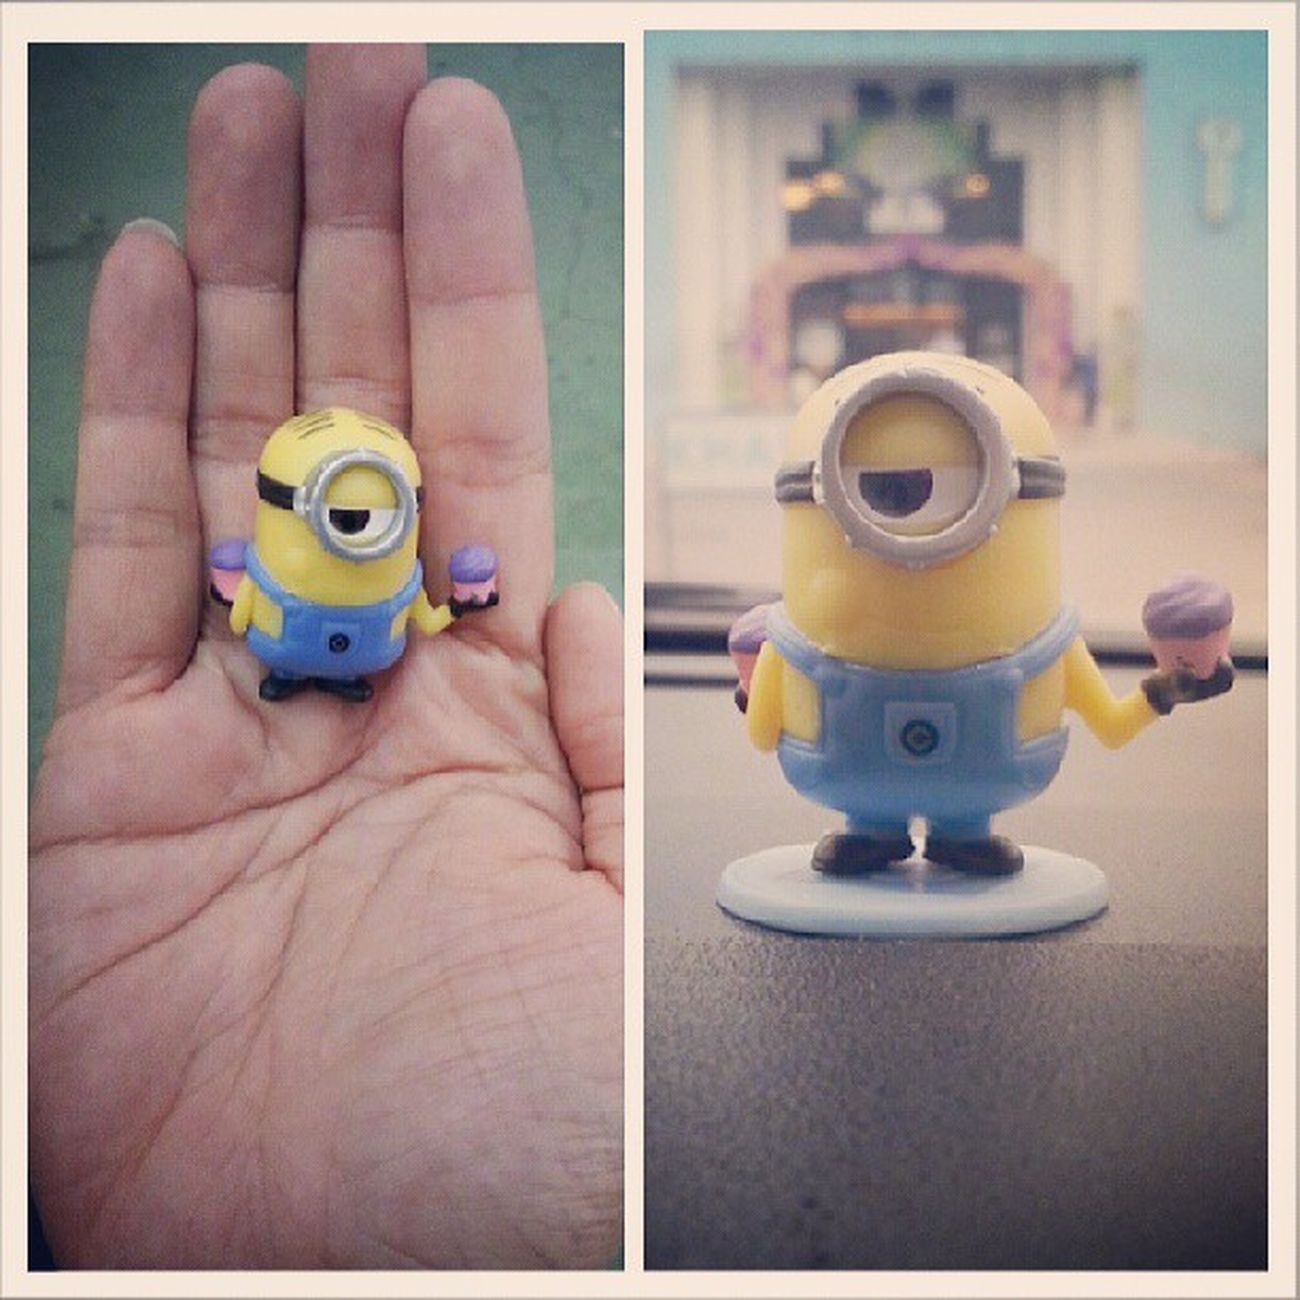 My Stuart Baboi Despicableme2 minions love cute small figure